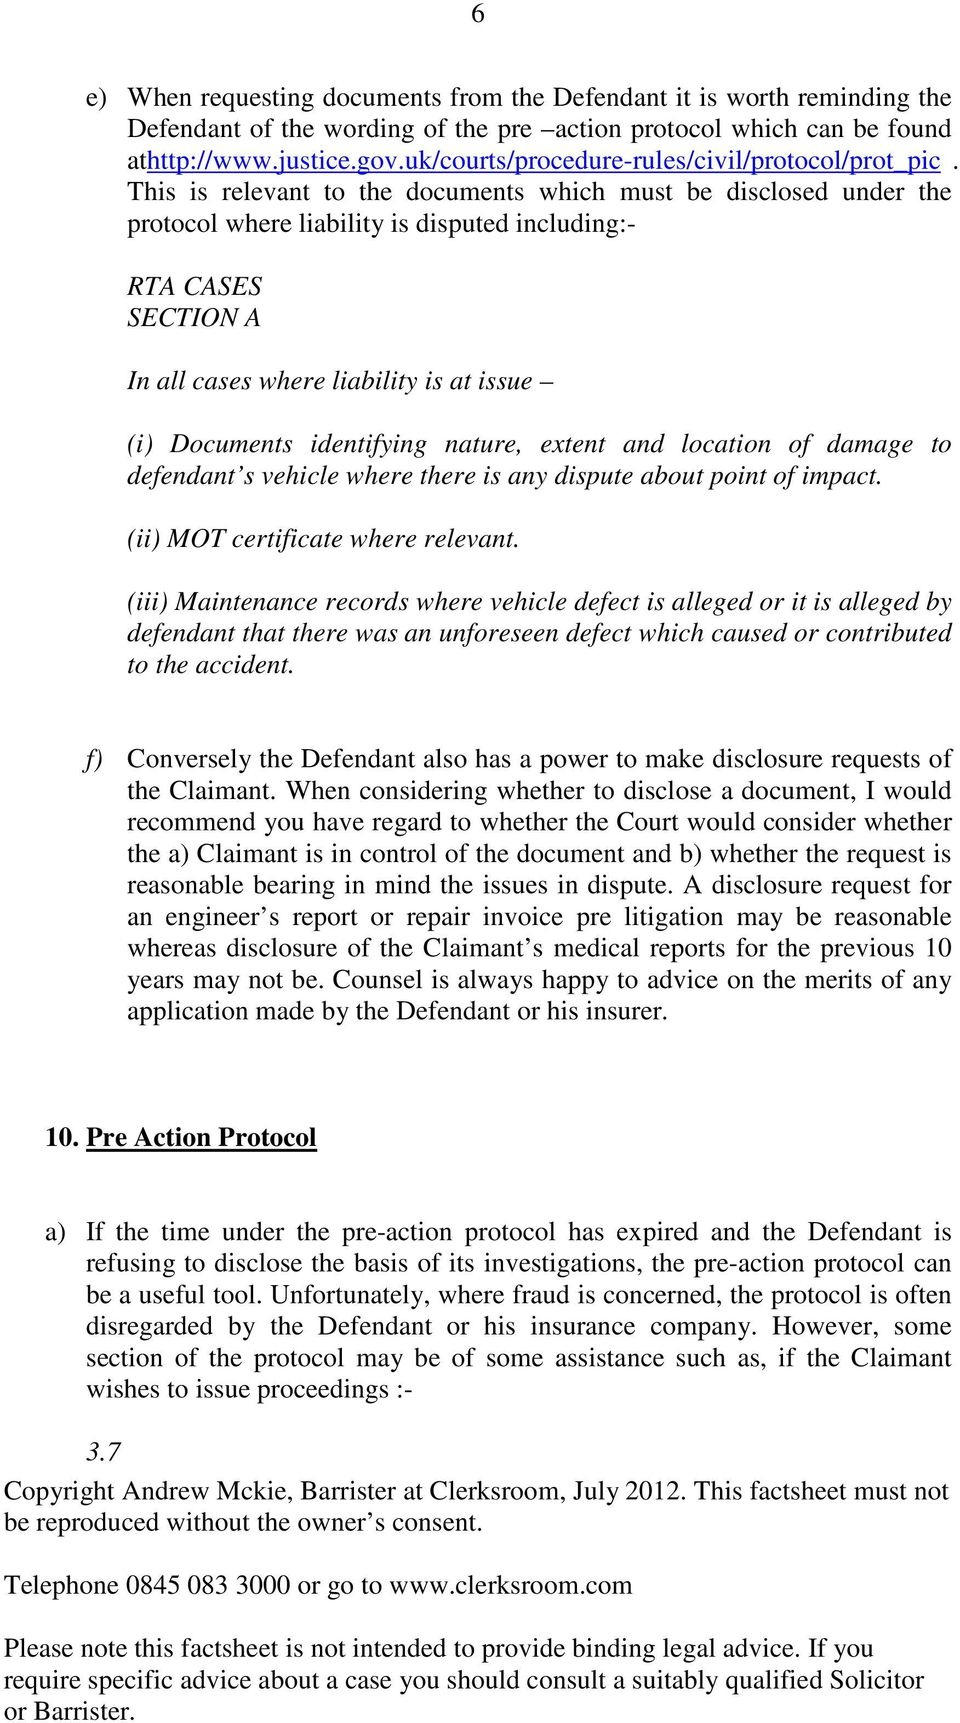 This is relevant to the documents which must be disclosed under the protocol where liability is disputed including:- RTA CASES SECTION A In all cases where liability is at issue (i) Documents